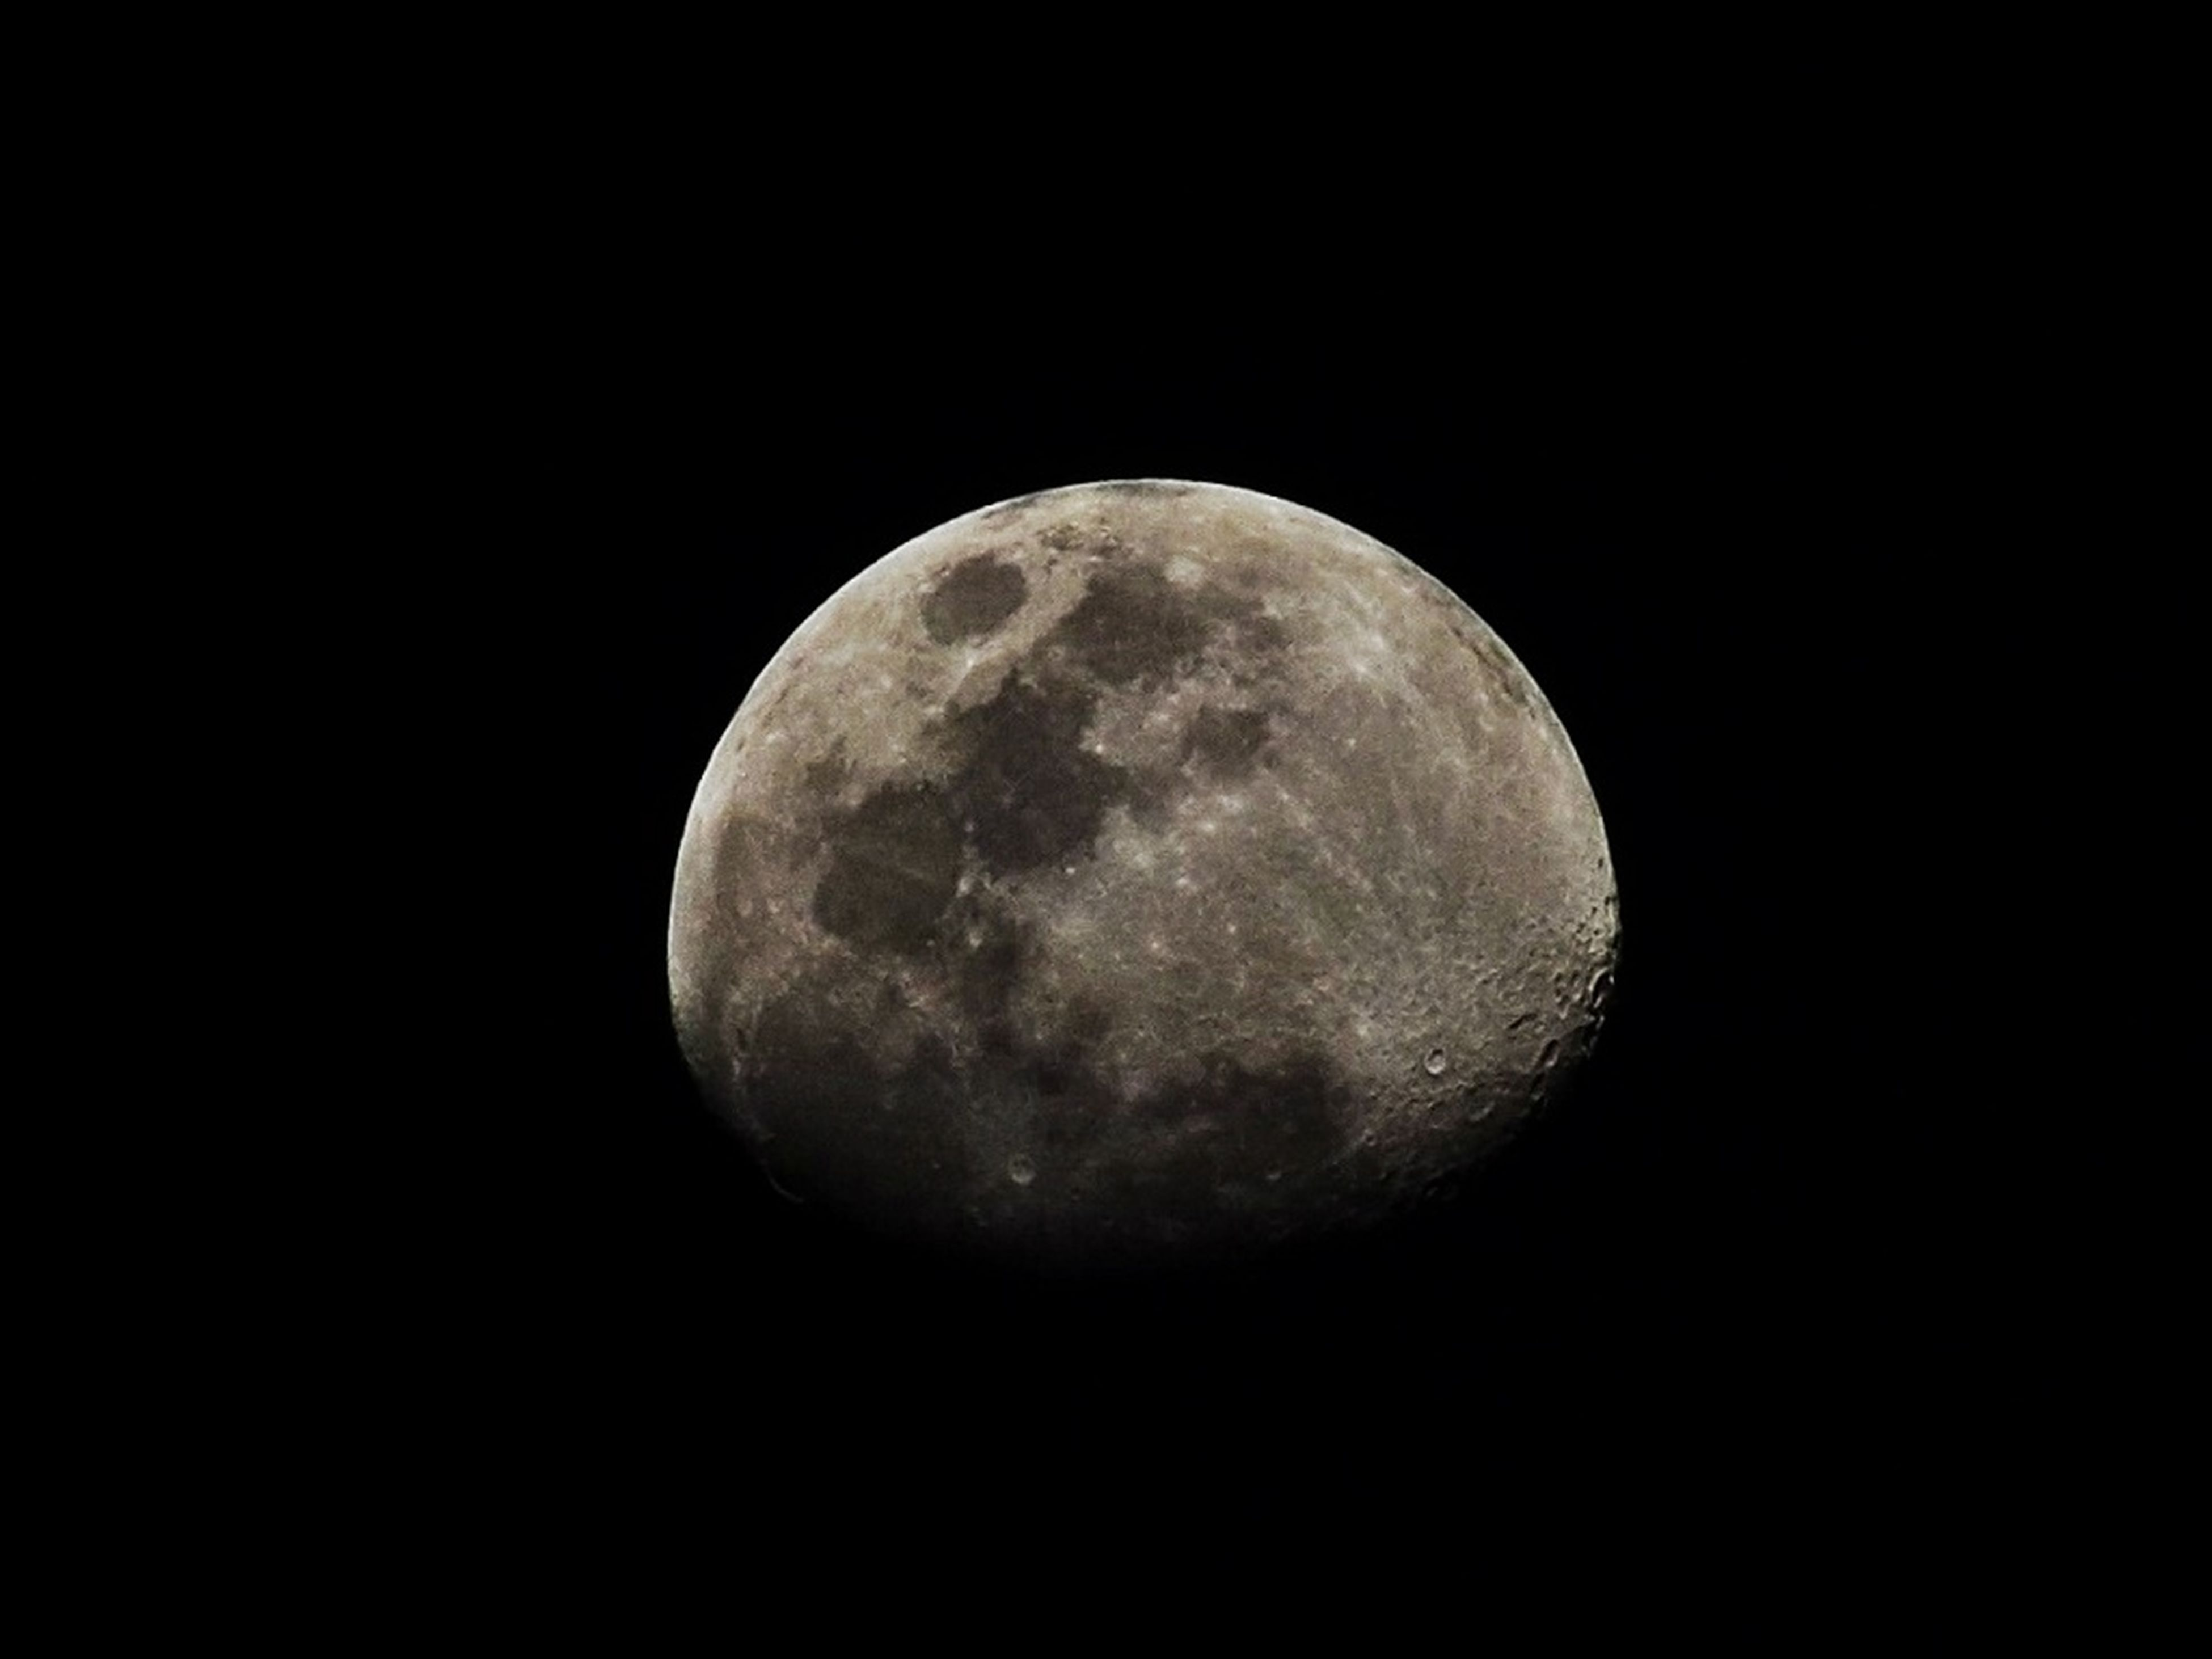 moon, astronomy, full moon, sphere, night, planetary moon, circle, moon surface, discovery, space exploration, low angle view, copy space, exploration, beauty in nature, nature, tranquility, dark, tranquil scene, scenics, sky